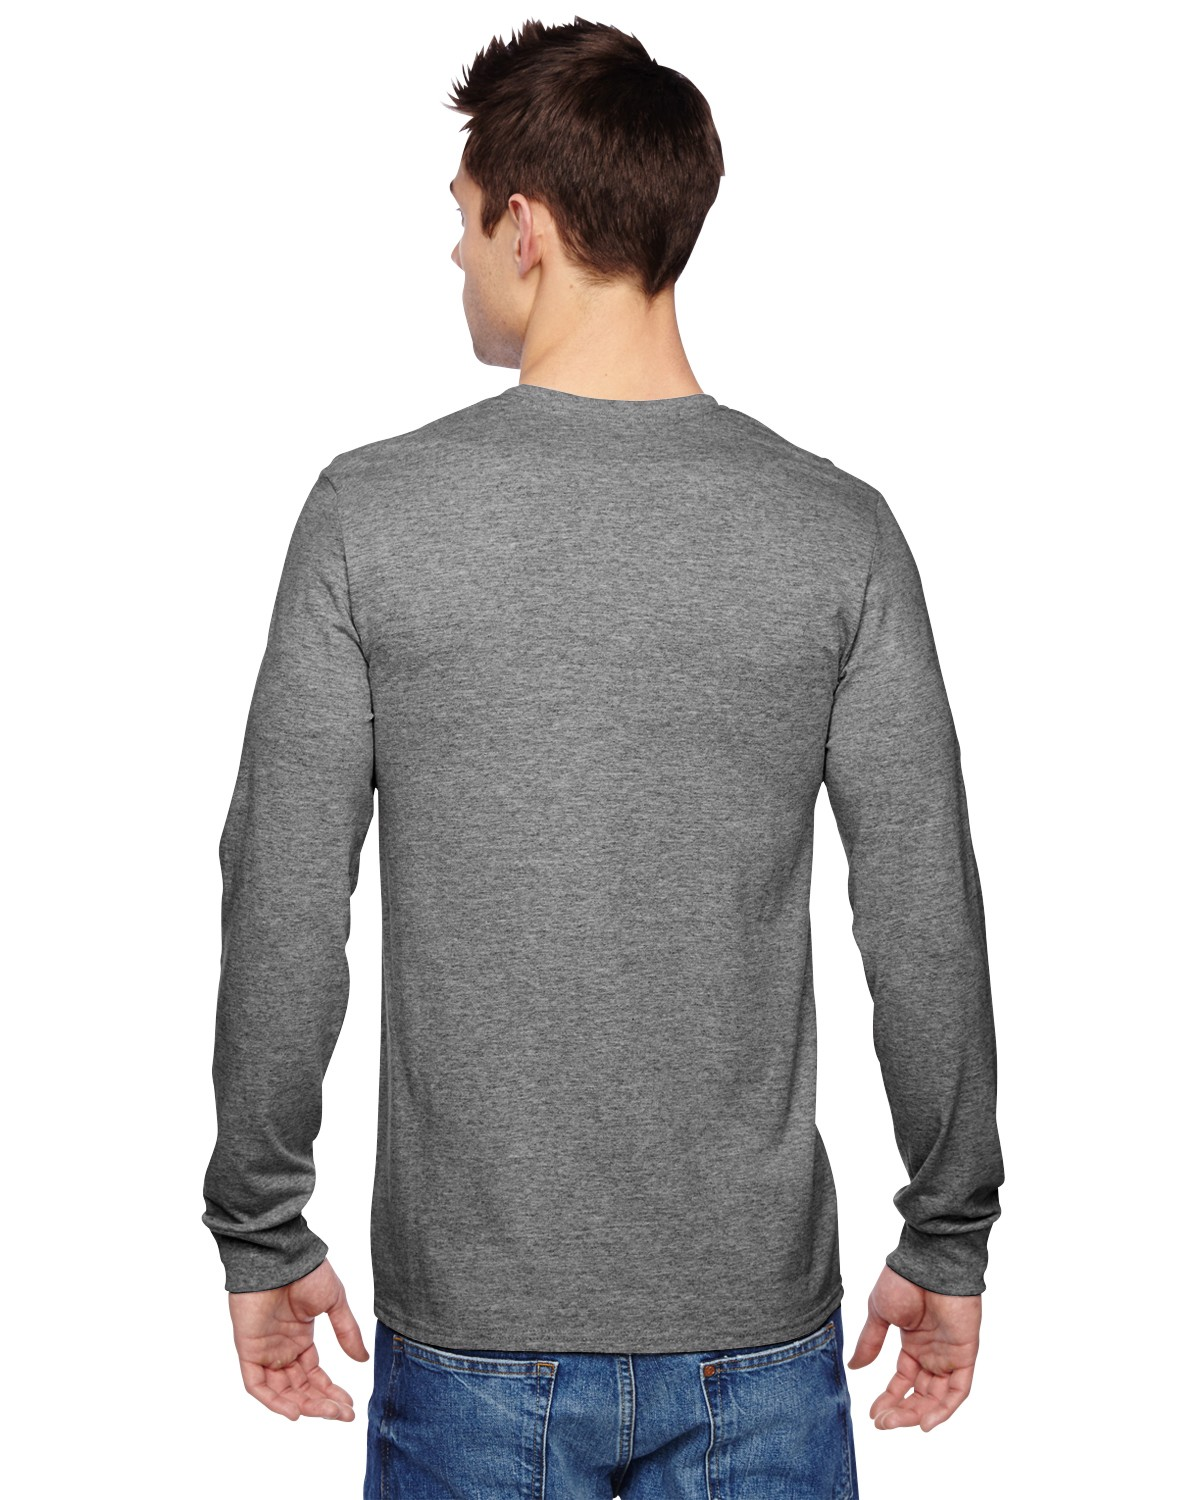 SFLR Fruit of the Loom CHARCOAL GREY